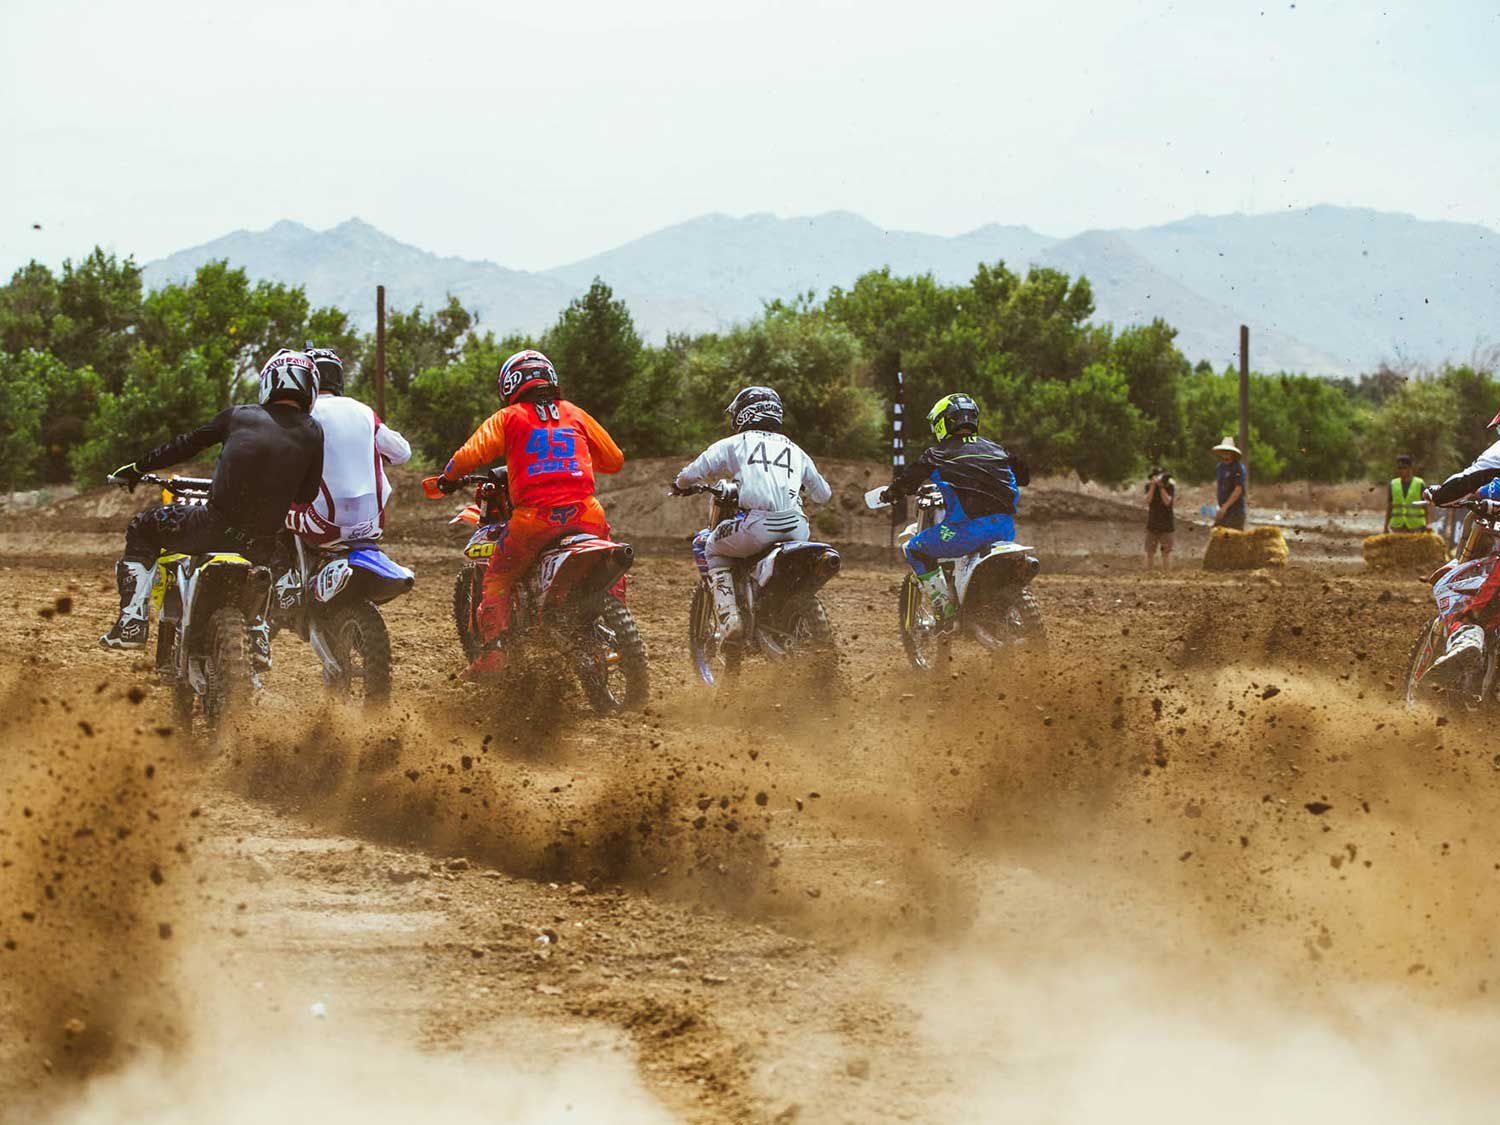 Racers jump from the starting gate during the moto race at Milestone Motocross Park.